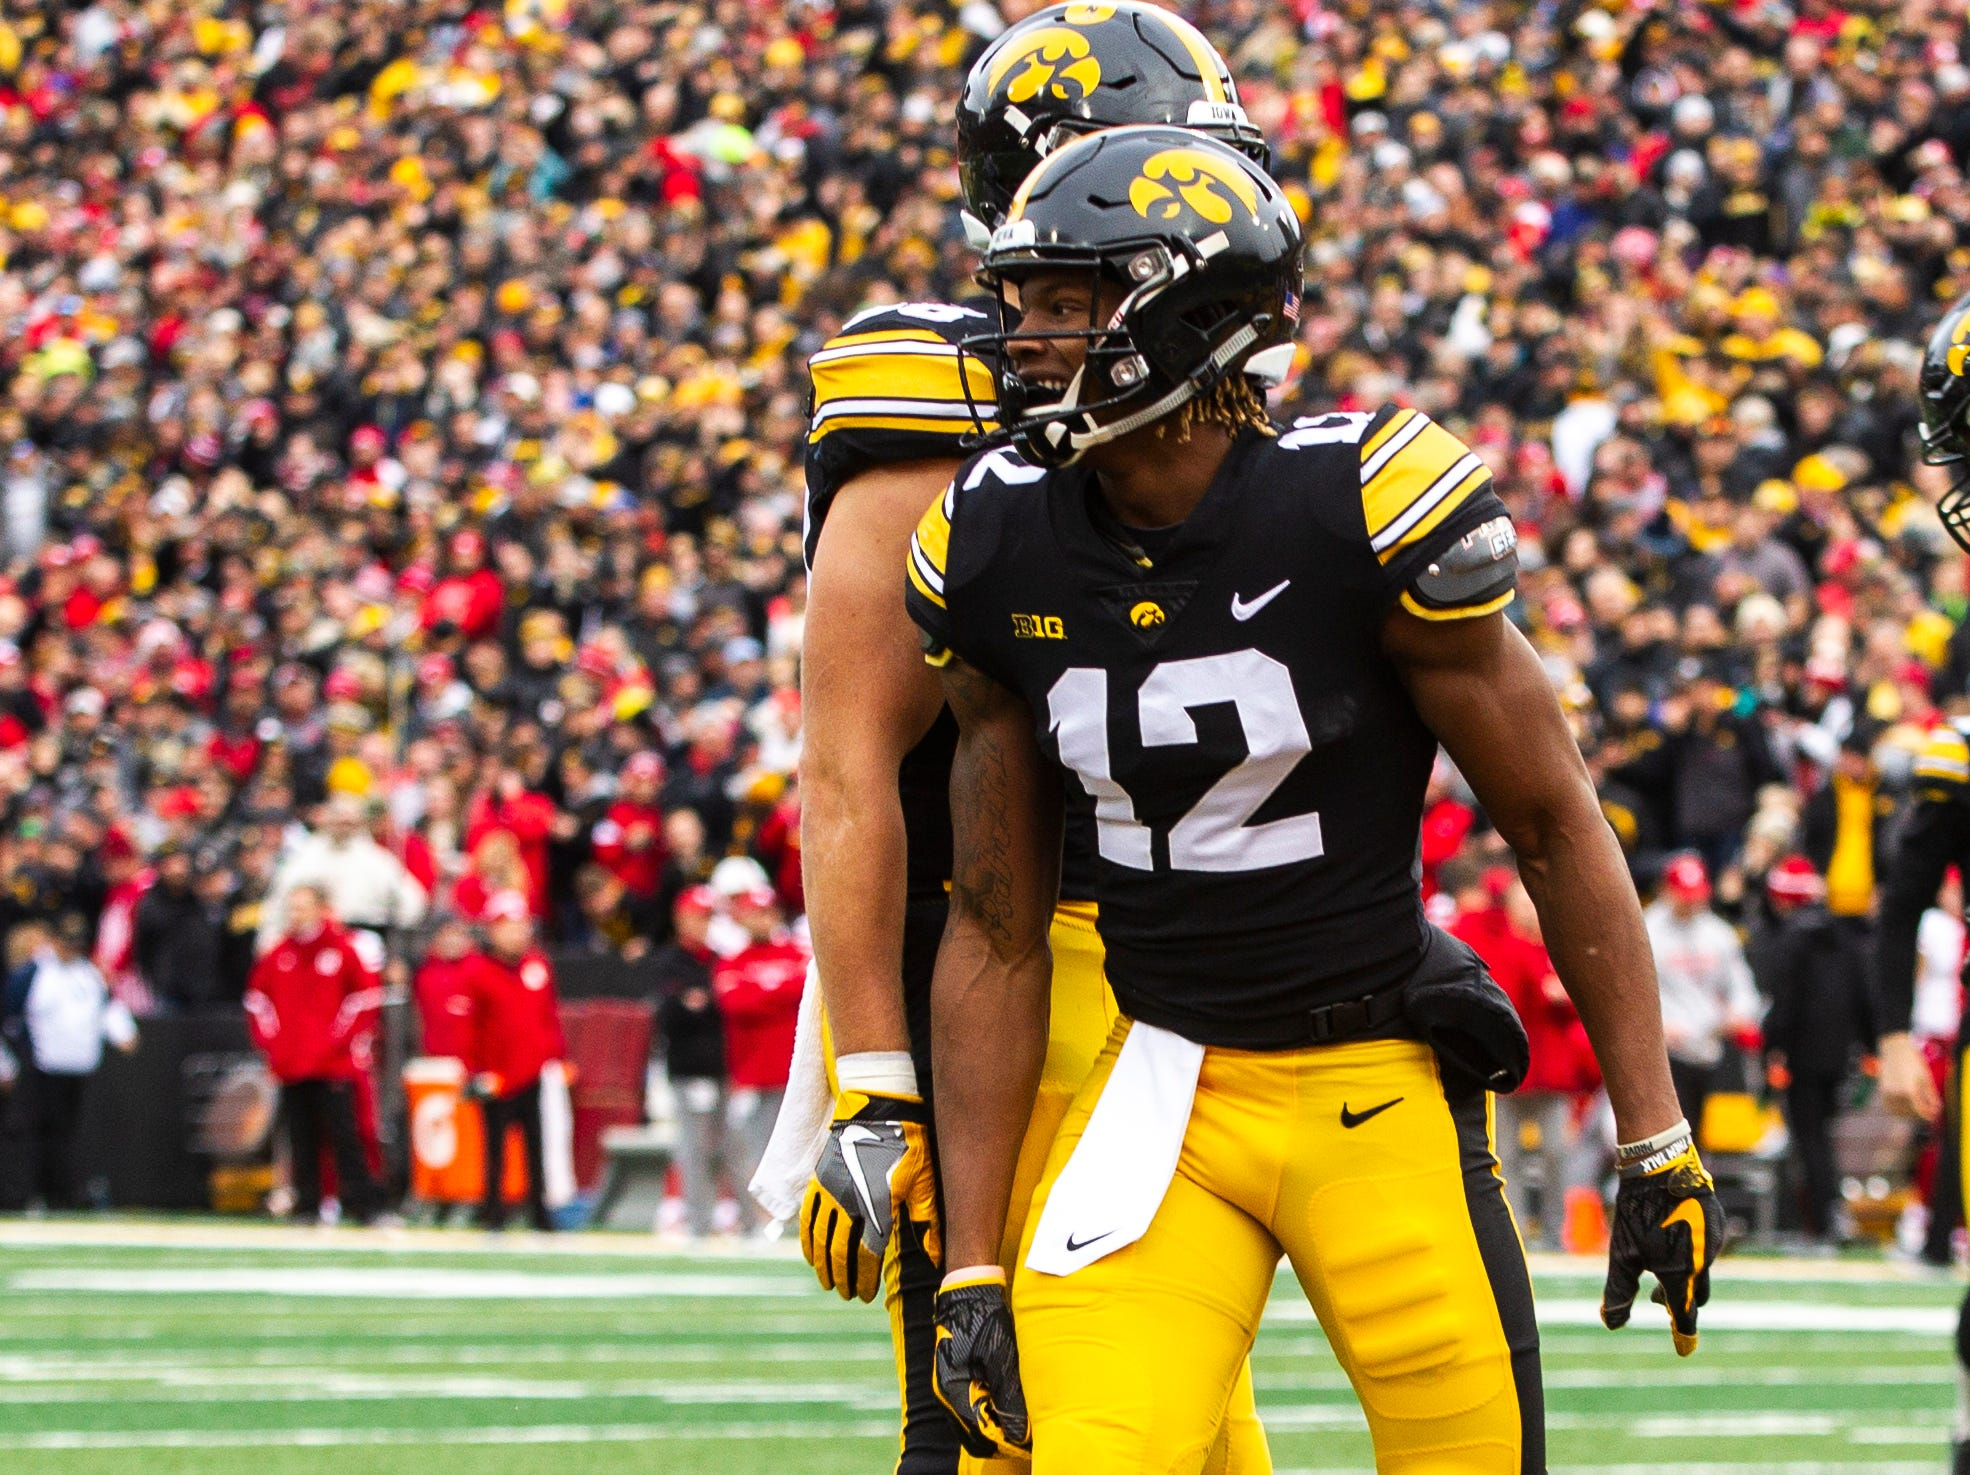 Iowa wide receiver Brandon Smith (12) celebrates after catching a touchdown pass during a Big Ten Conference NCAA football game on Friday, Nov. 23, 2018, at Kinnick Stadium in Iowa City.